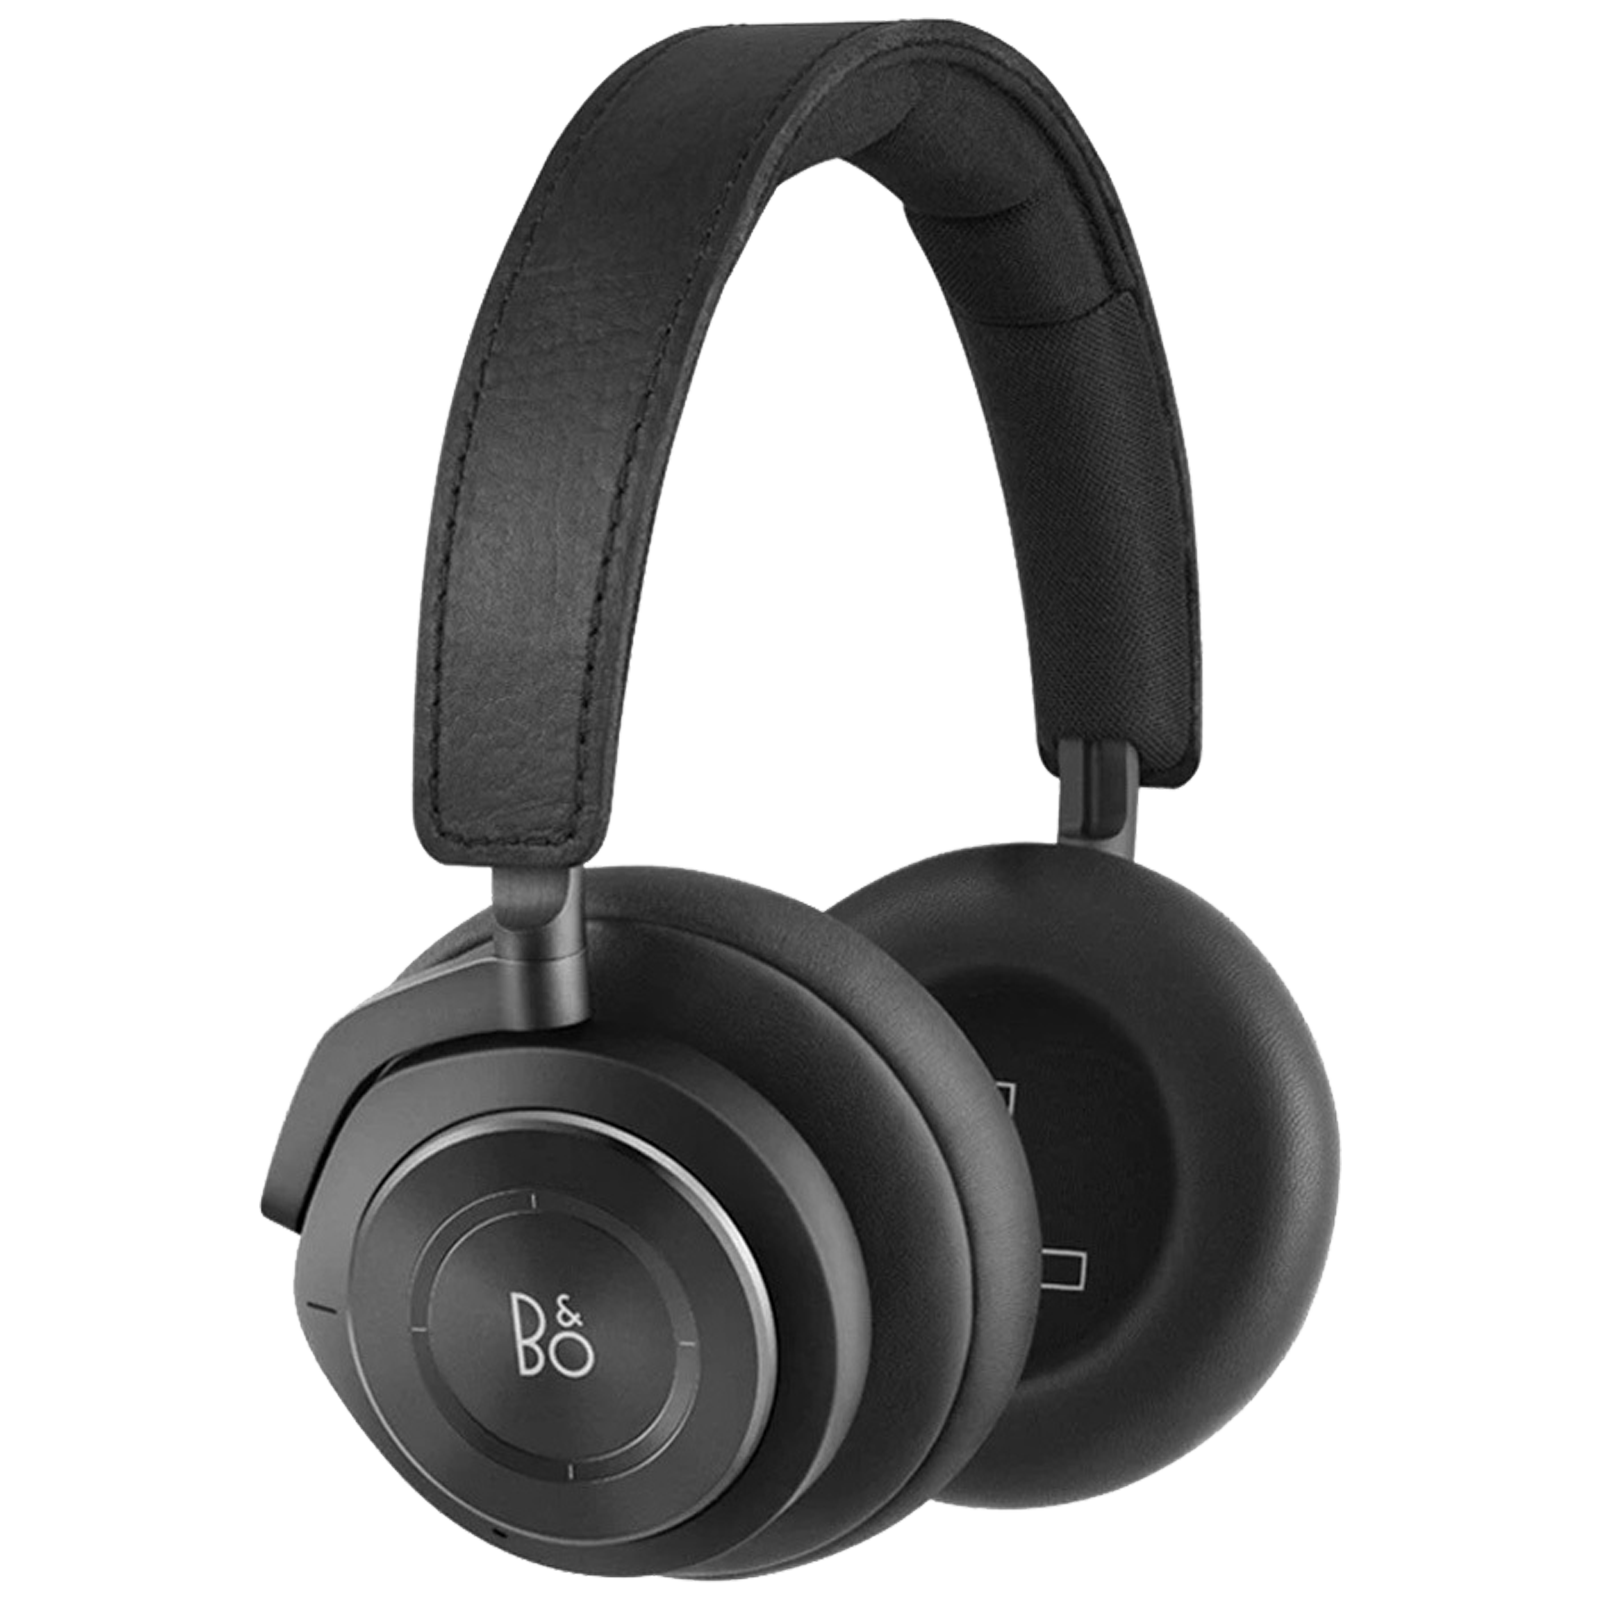 Bang & Olufsen Beoplay H9 3rd Gen Over-Ear Active Noise Cancellation Wireless Headphone with Mic (Bluetooth 4.2, Voice Assistant Supported, BO-BPH9-MTBLK, Matte Black)_1